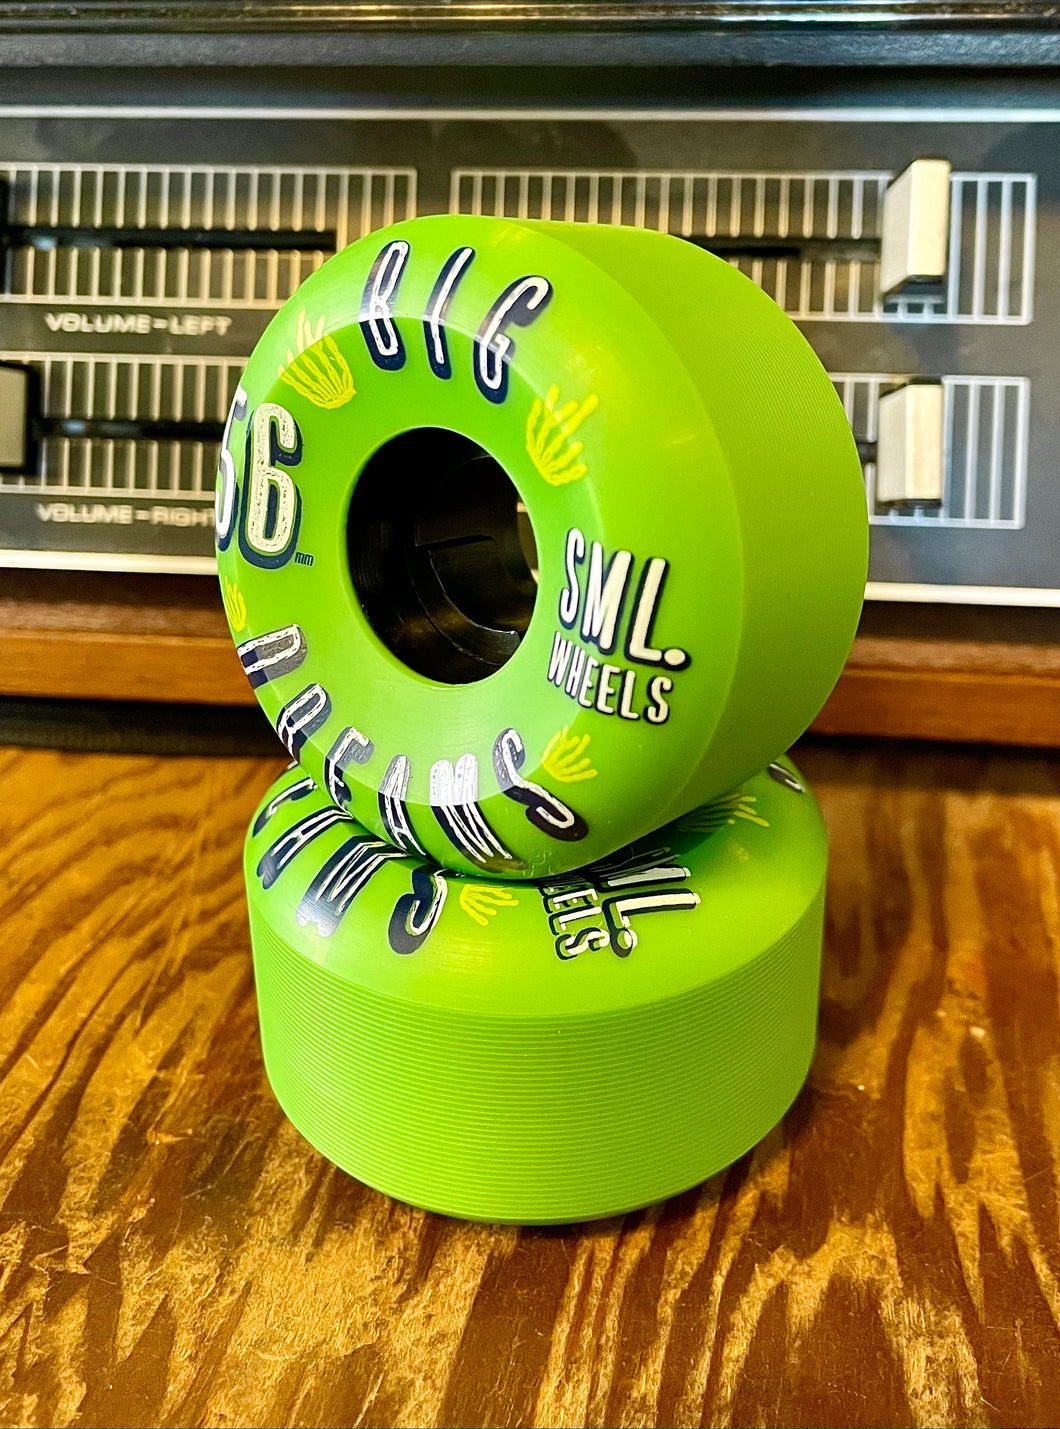 SML Big Dreams Skateboard Wheels 56mm, 92a